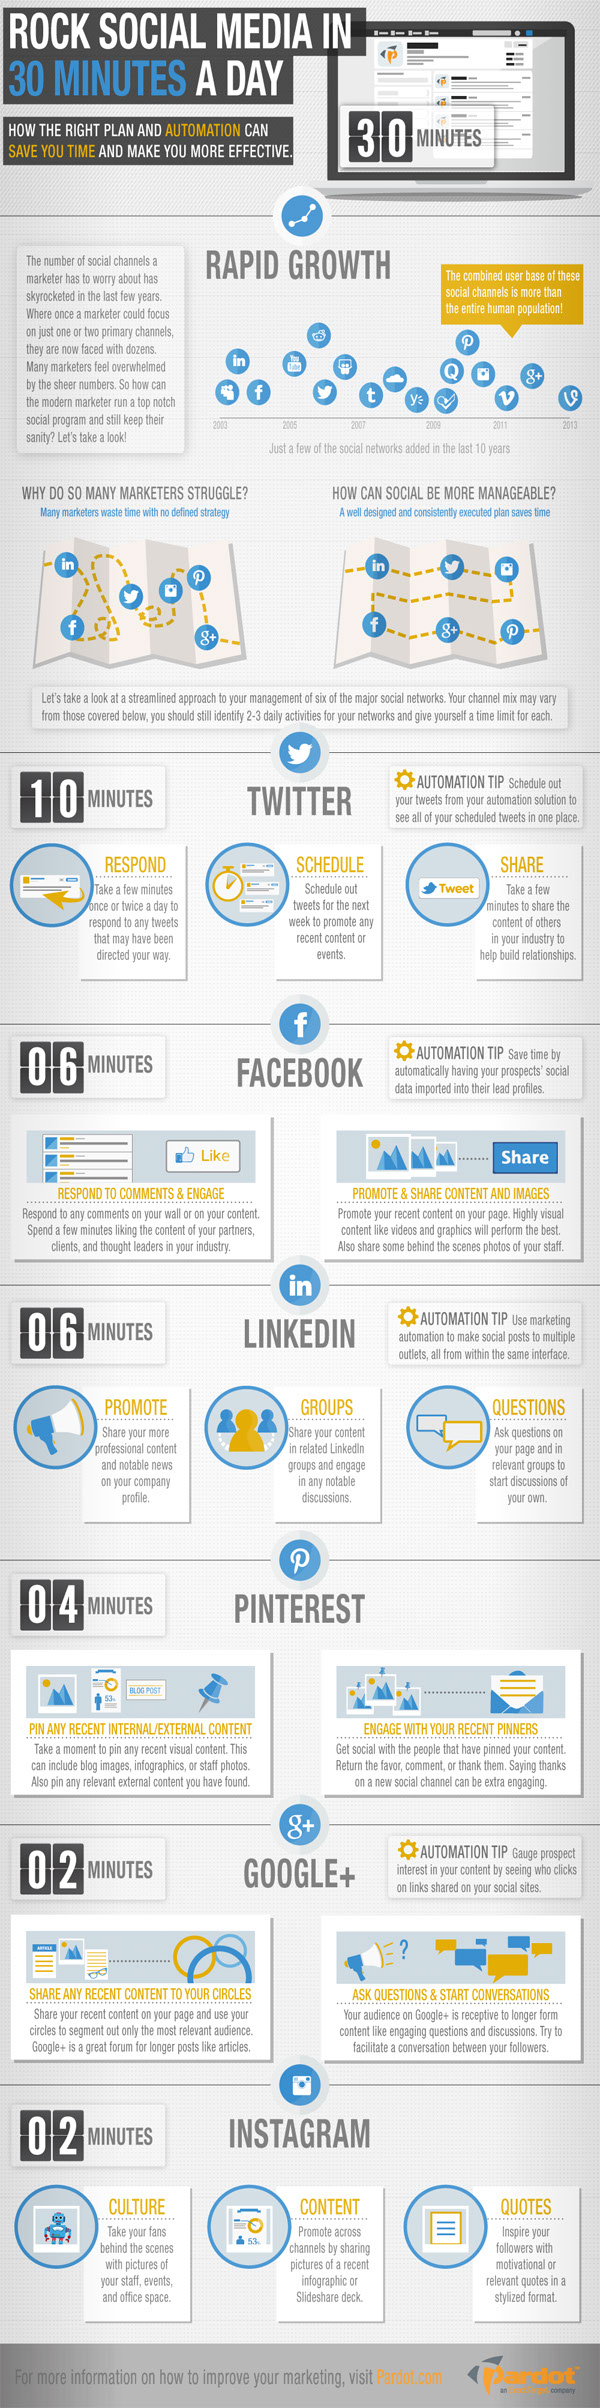 Social Media Automation Tips-Infographic